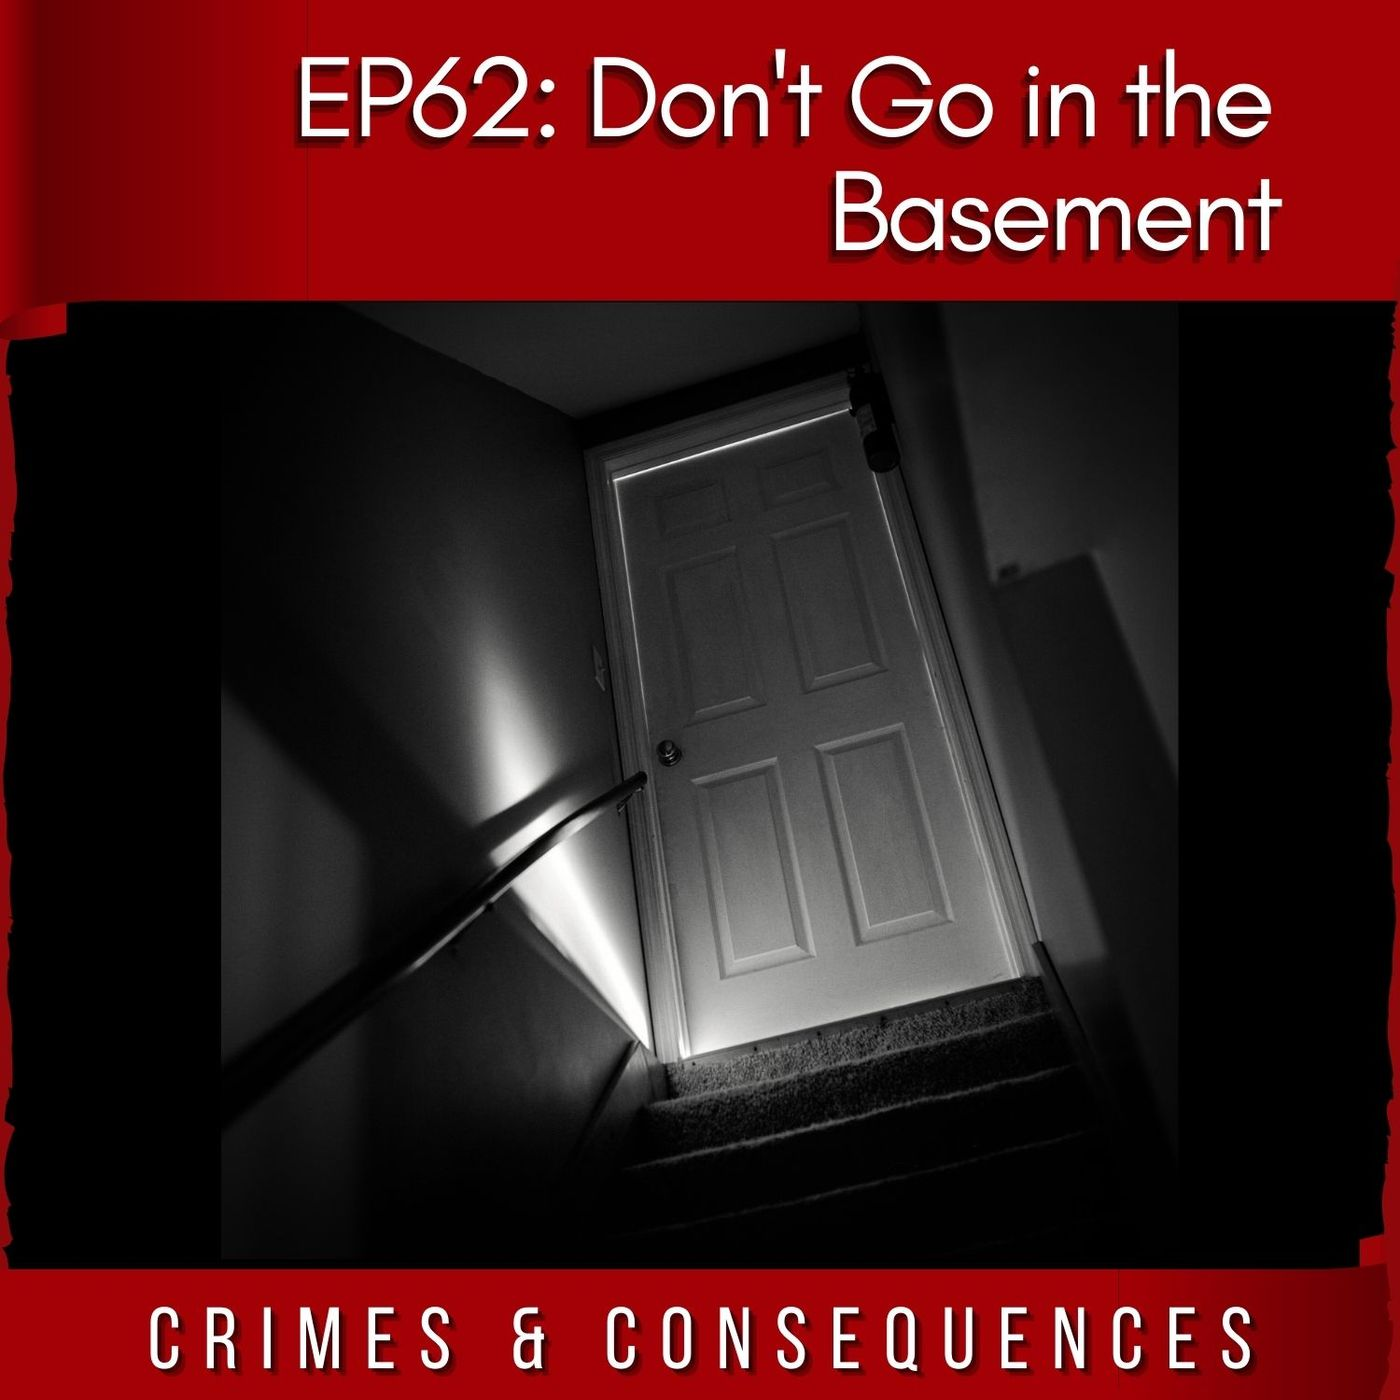 EP62: Don't Go in the Basement!